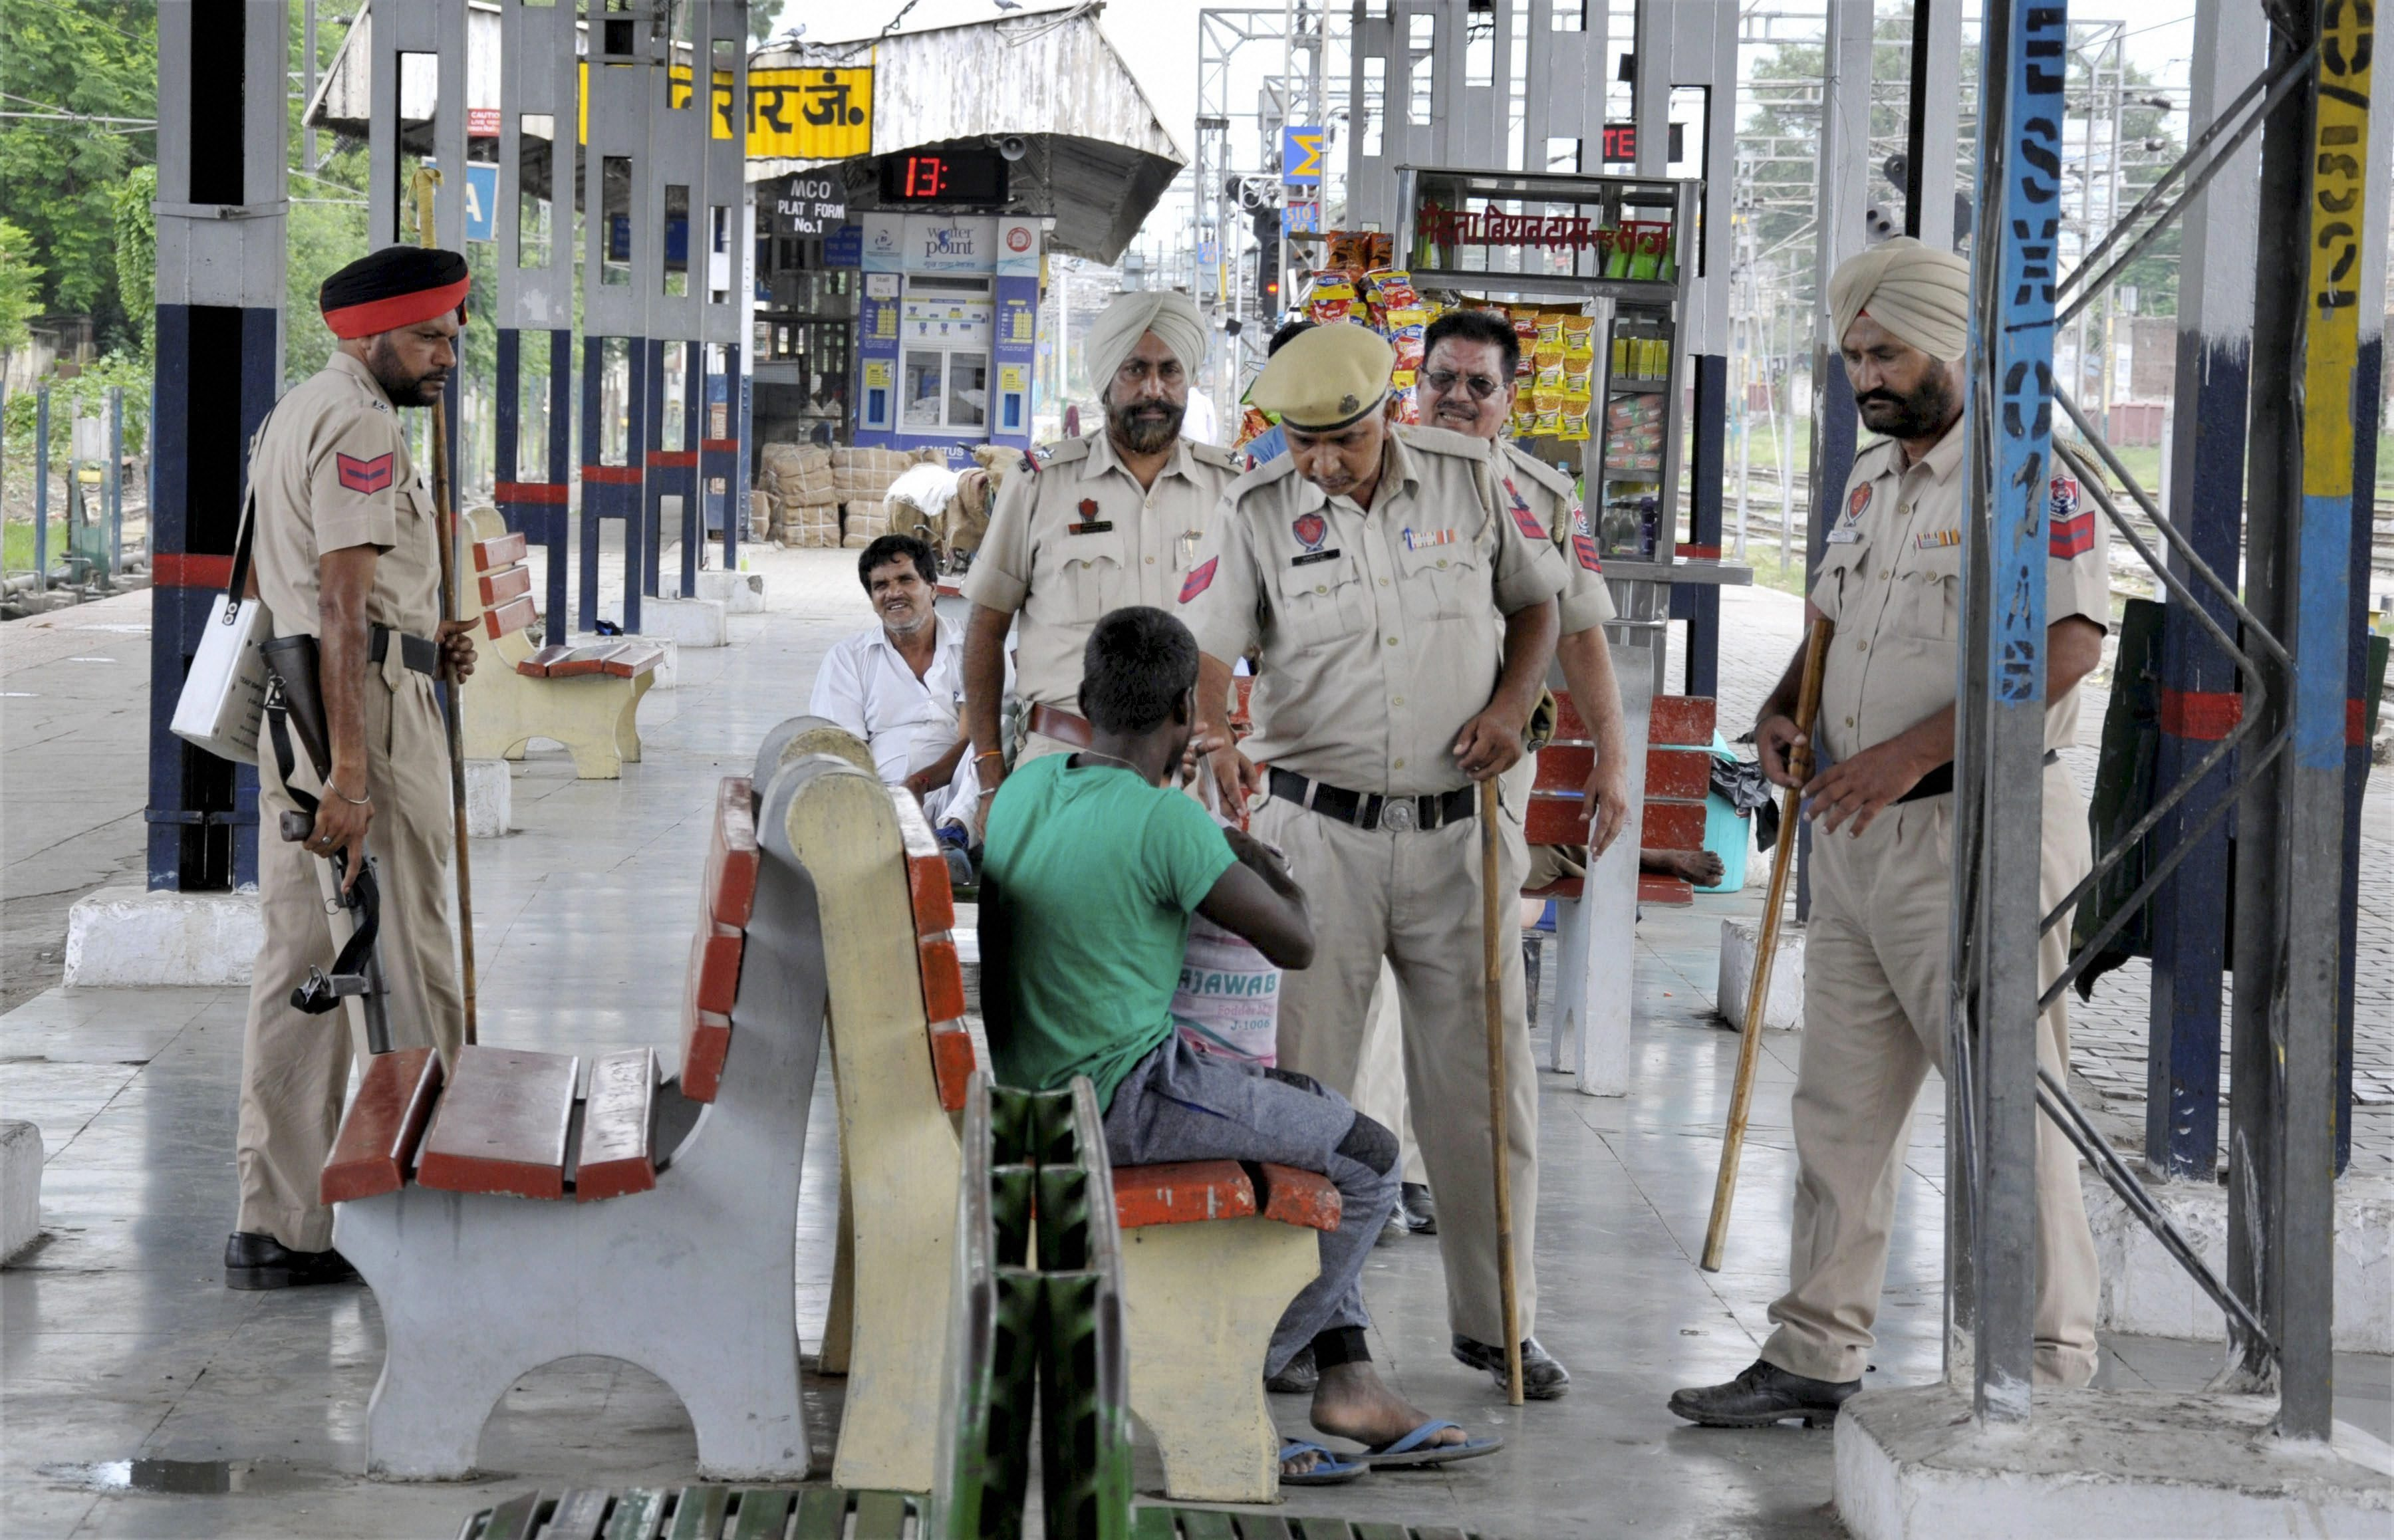 Amritsar: Police personnel take stock of the security situation at Amritsar railway station on Friday in view of apprehensions of unrest due to the verdict in a case against Dera Sacha Sauda chief Gurmeet Ram Rahim Singh. PTI Photo(PTI8_25_2017_000076B)